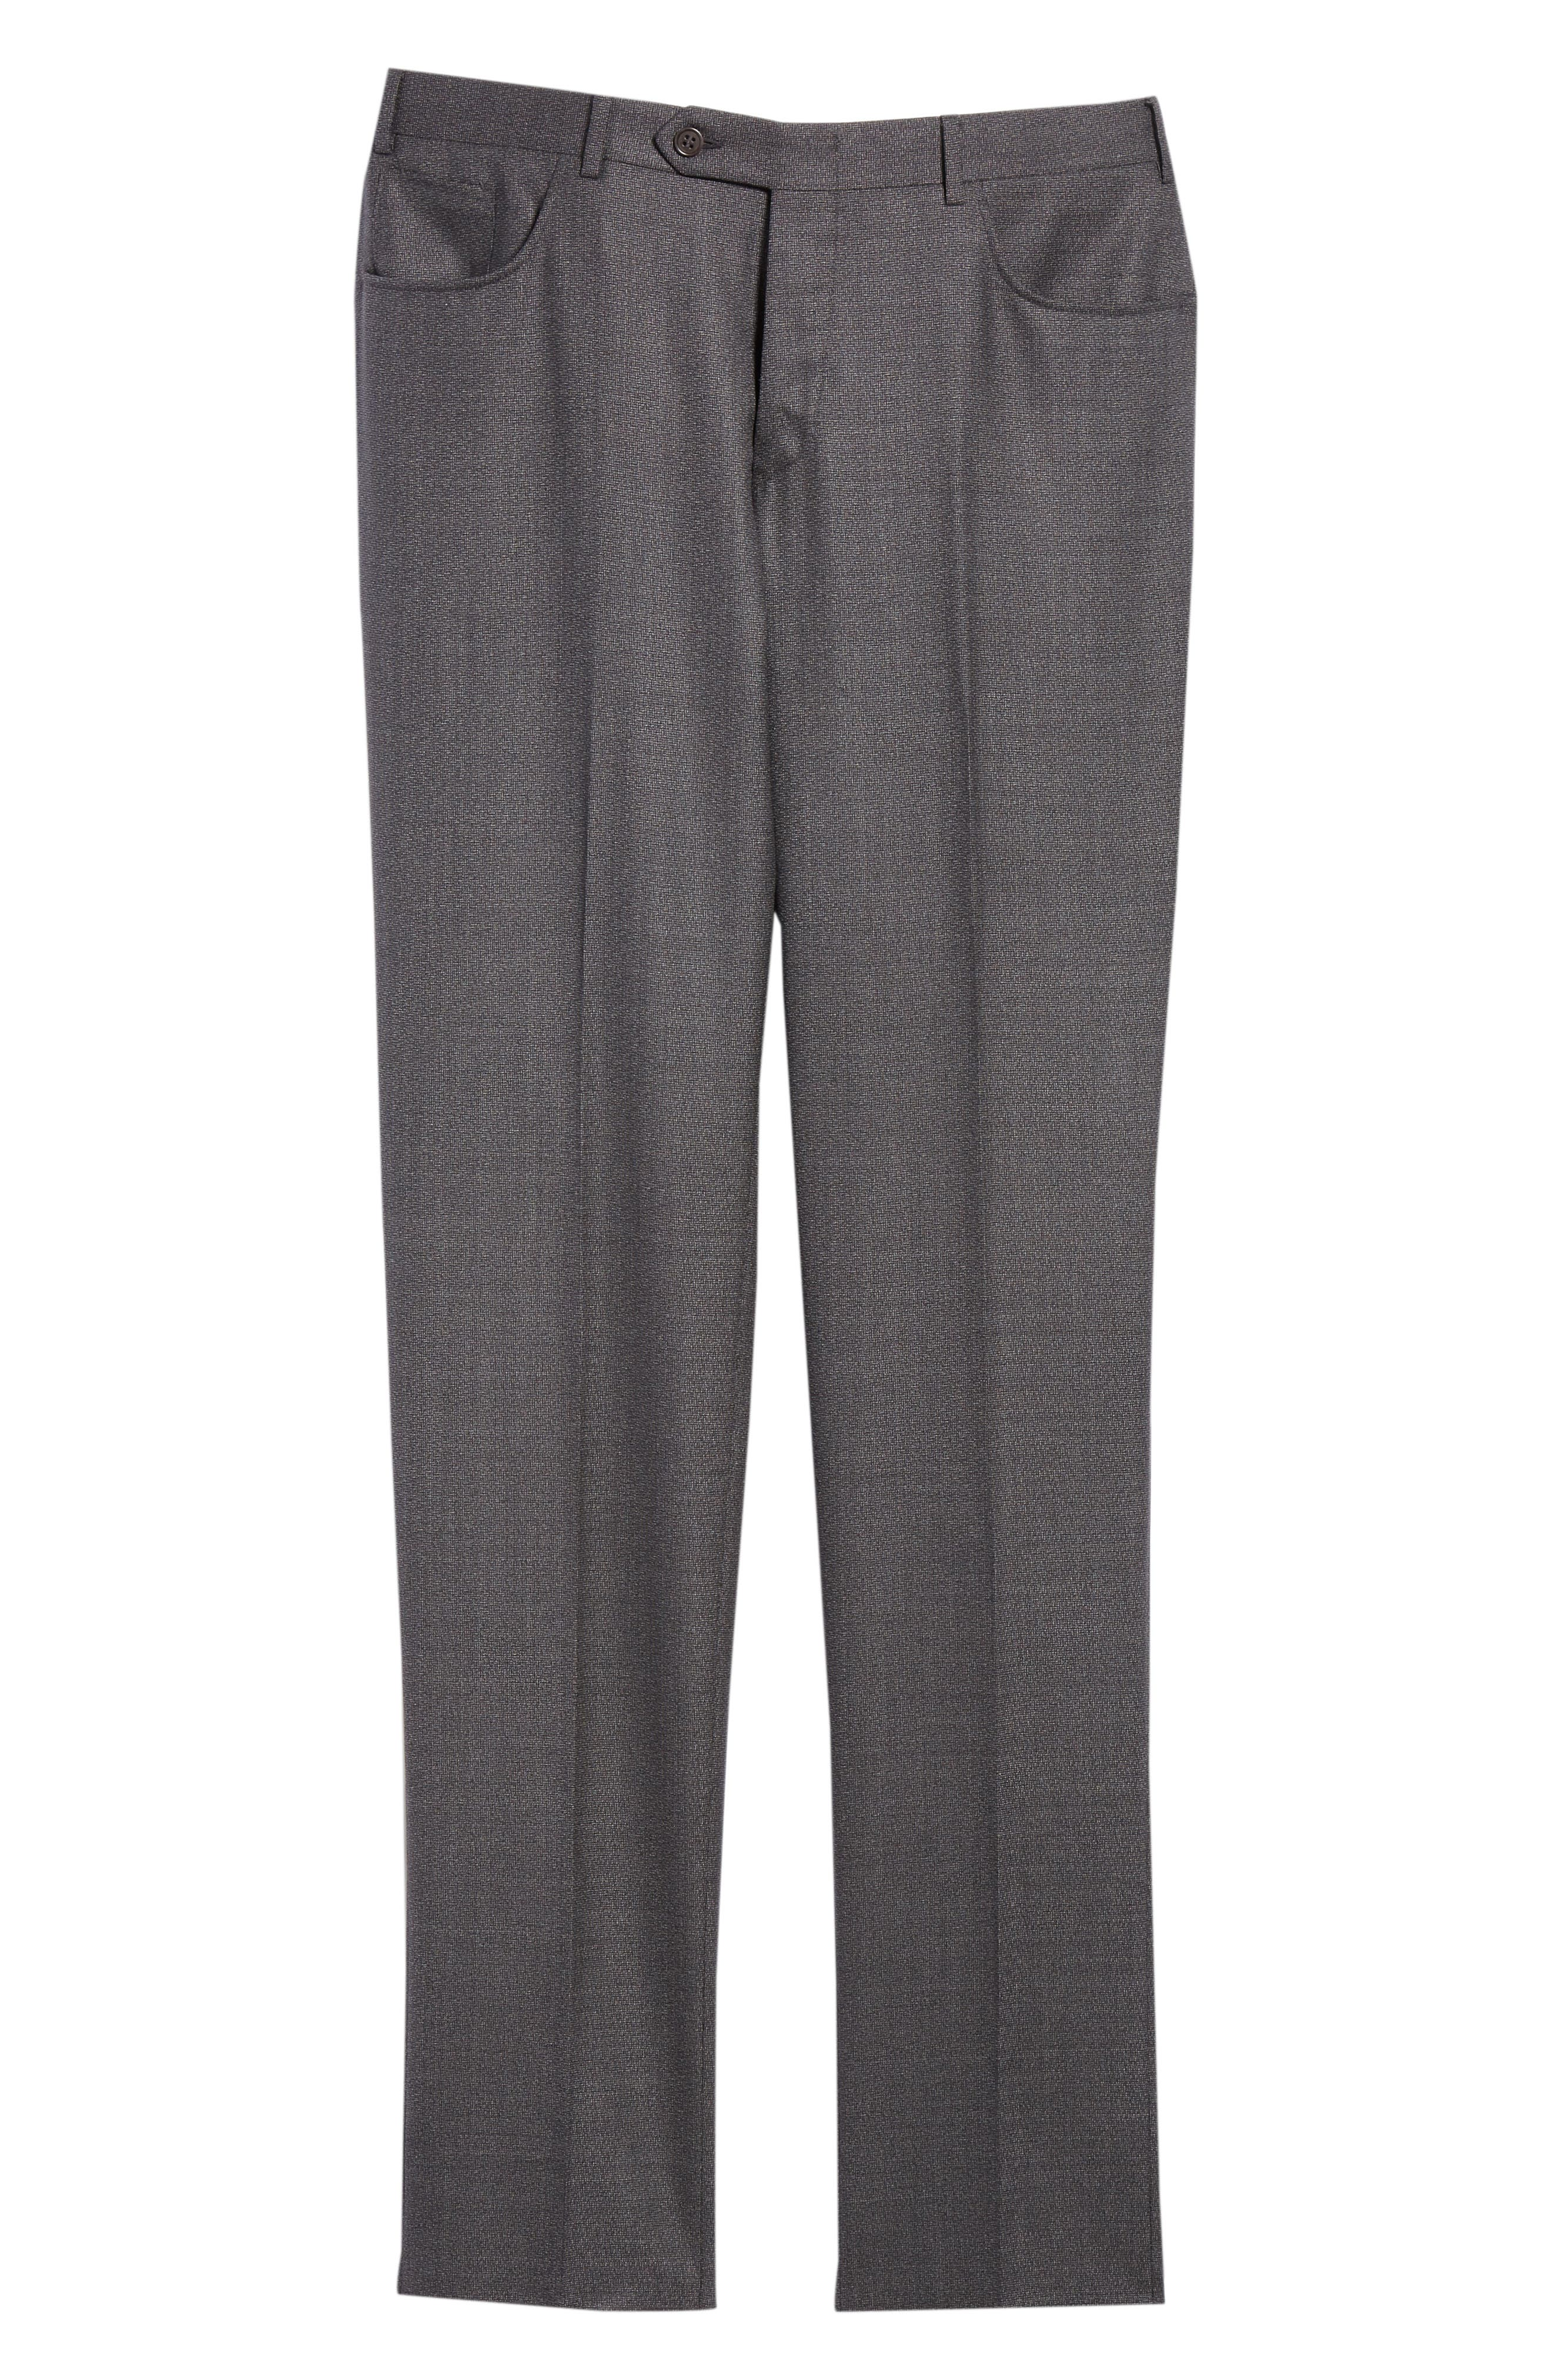 Flat Front Solid Wool Trousers,                             Alternate thumbnail 6, color,                             CHARCOAL